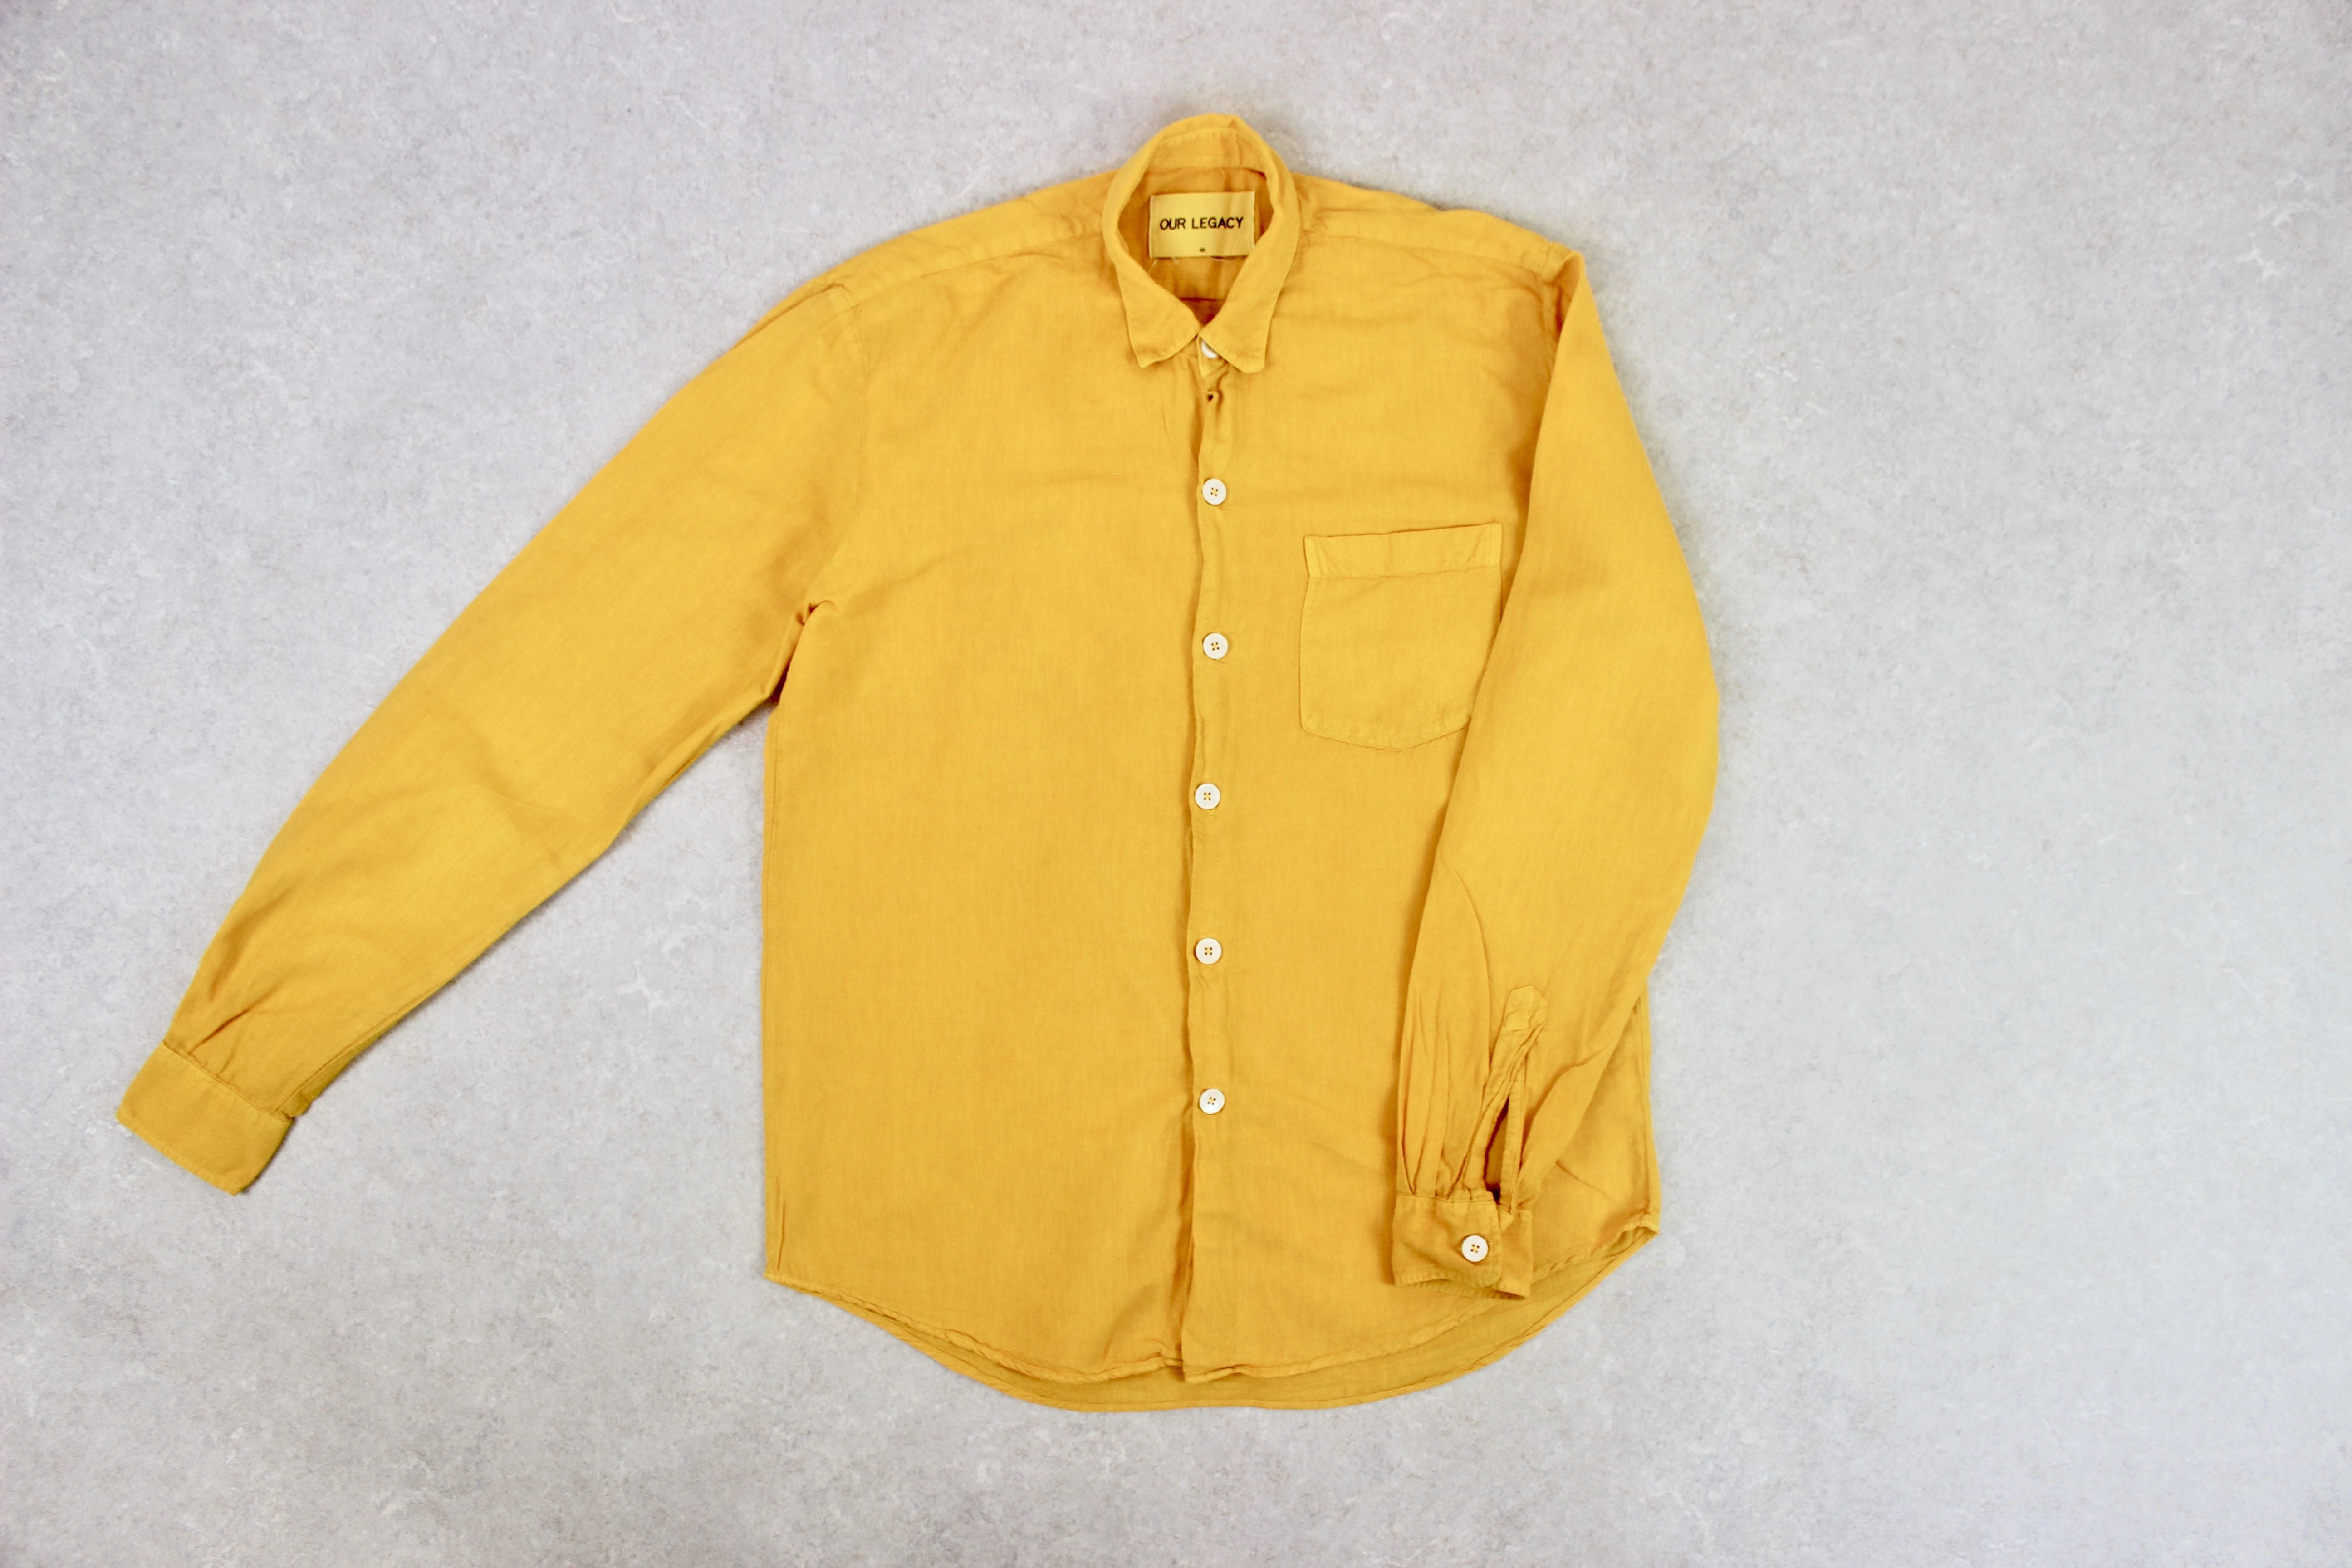 Our Legacy - Cotton/Linen Shirt - Yellow - 46/Small